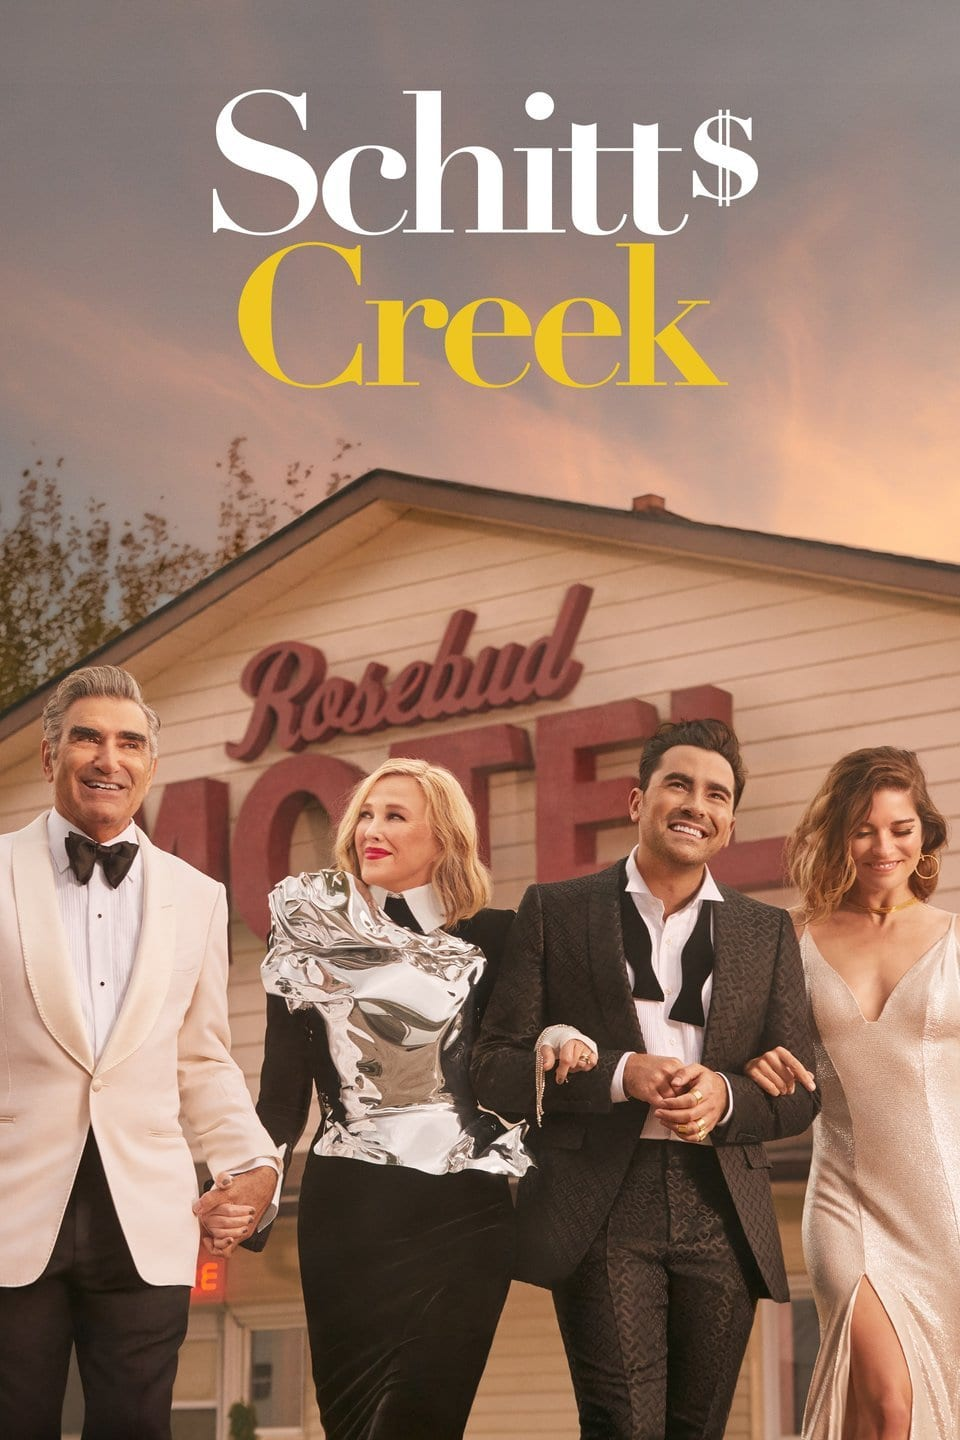 Image of Schitt's Creek promotional material. Schitt's Creek is on the High Five Events binge-worthy show recommendation list.